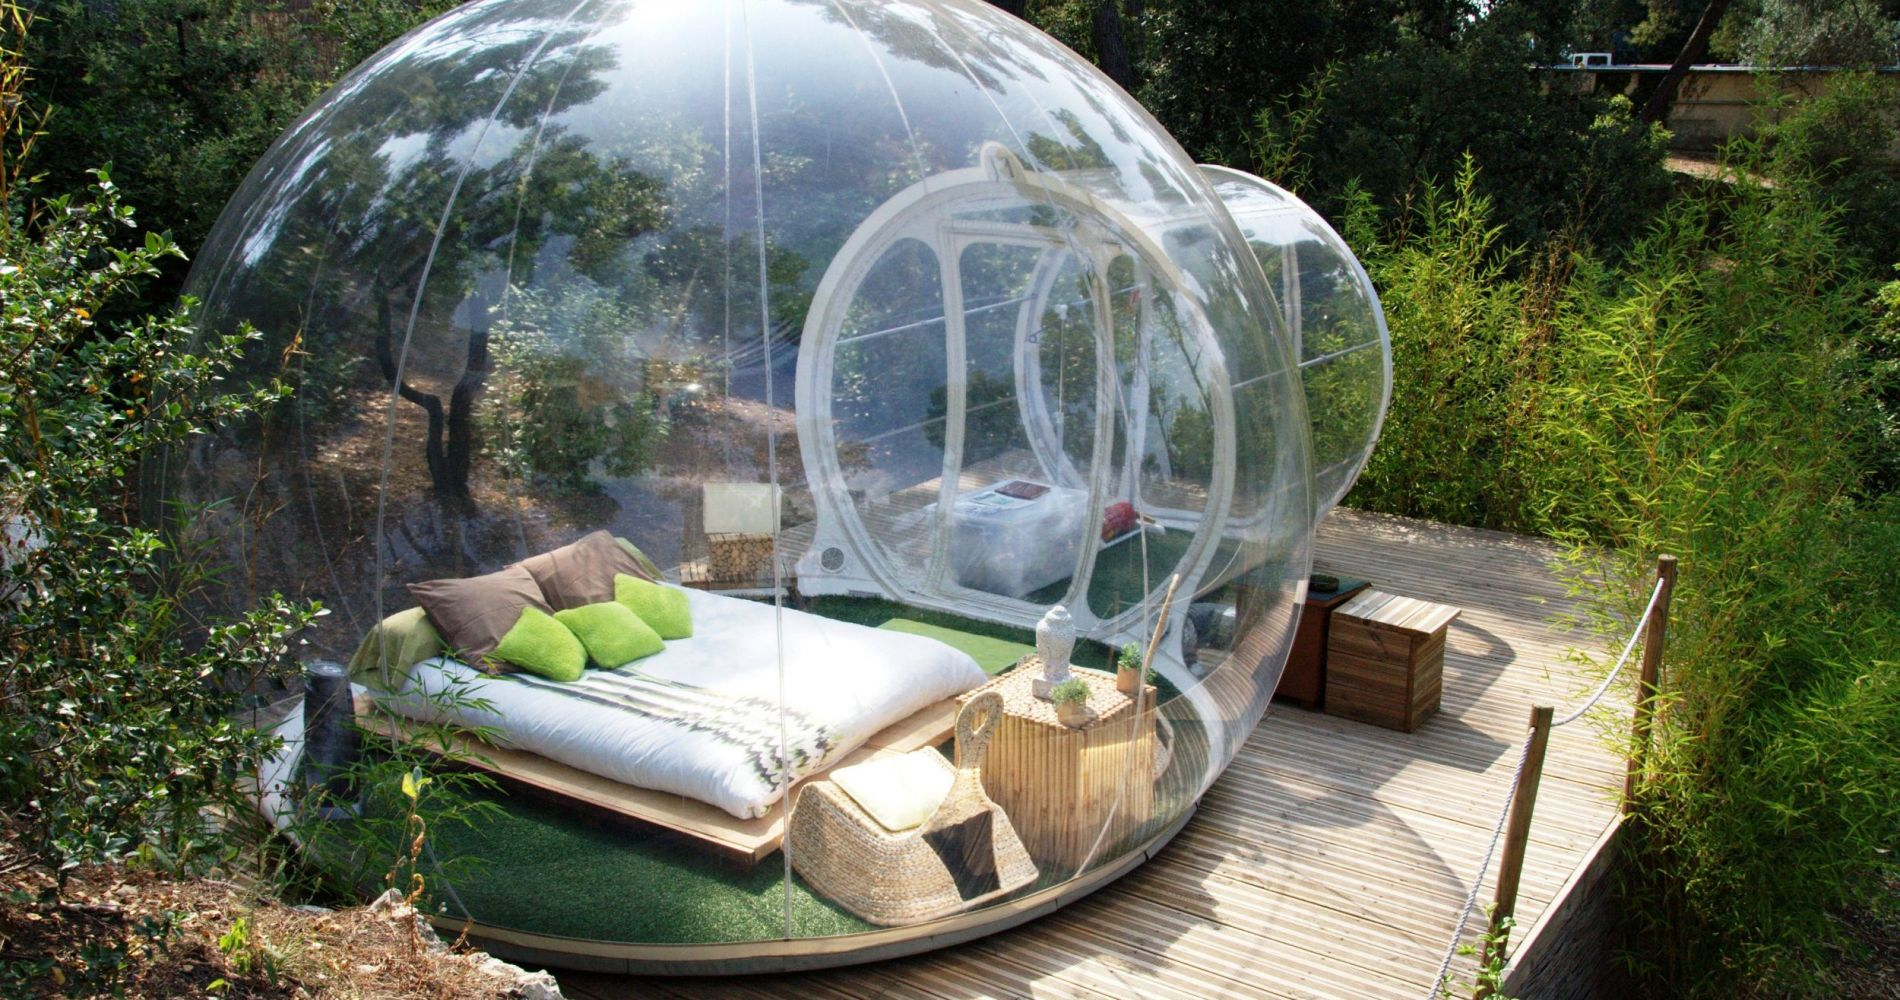 stargazing overnight in a bubble hotel honeymoon experience in france